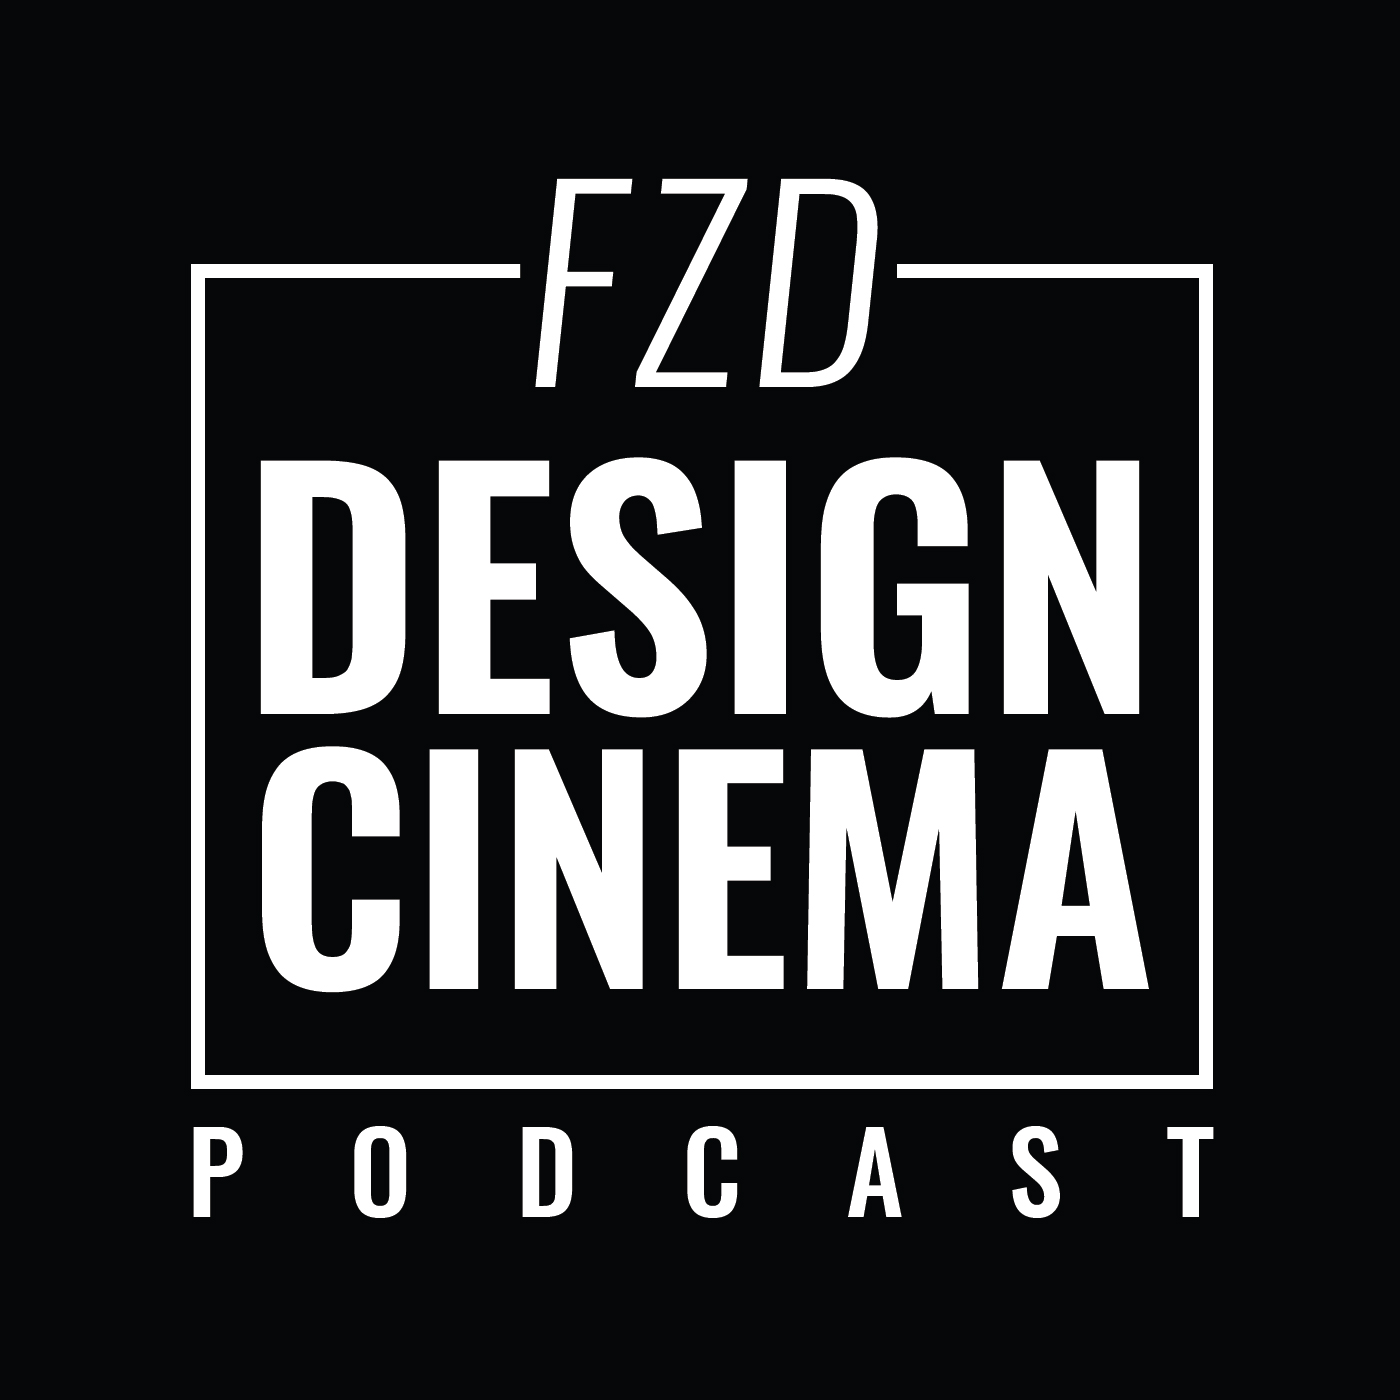 FZD Design Cinema Podcast